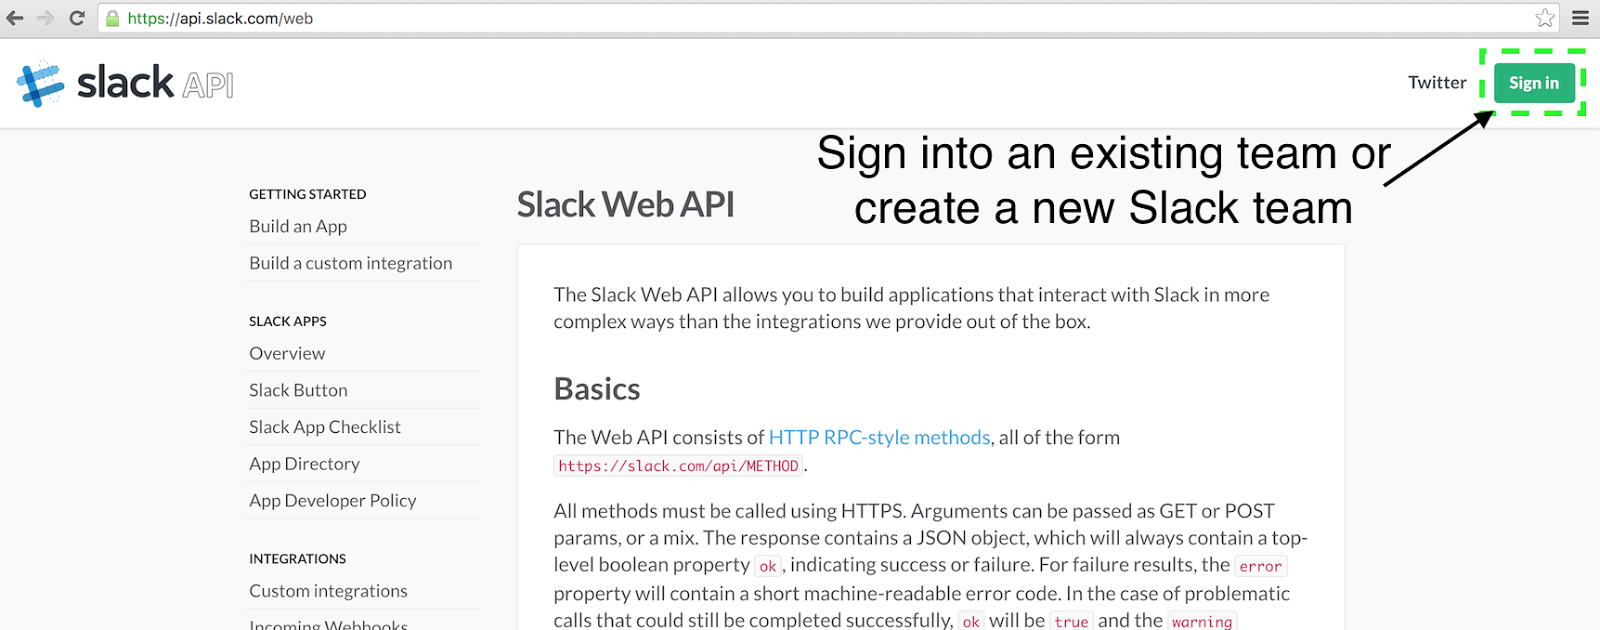 slack-api-sign-in.png